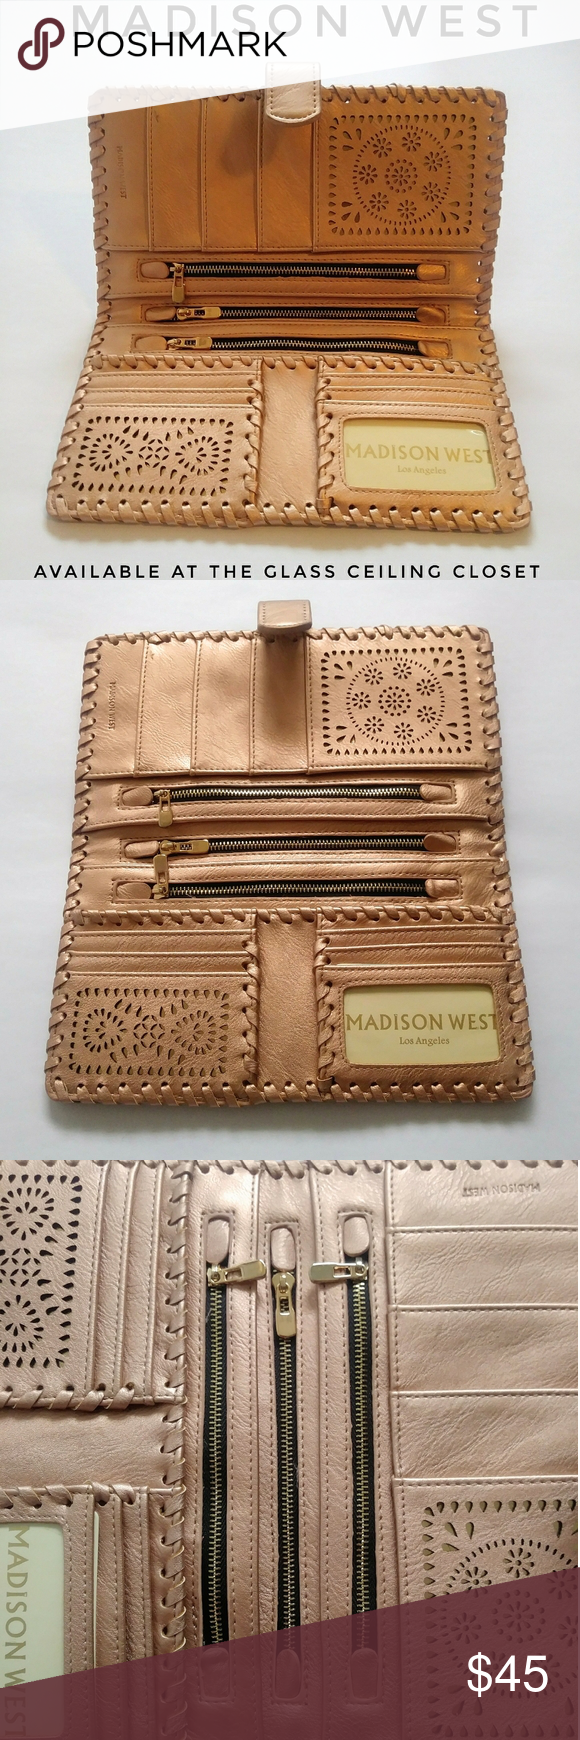 NWOT MADISON WEST PASSPORT WALLET NWOT ROSE GOLD WALLET! PROVIDES PLENTY OF ROOM! Madison West Bags Wallets #myposhpicks